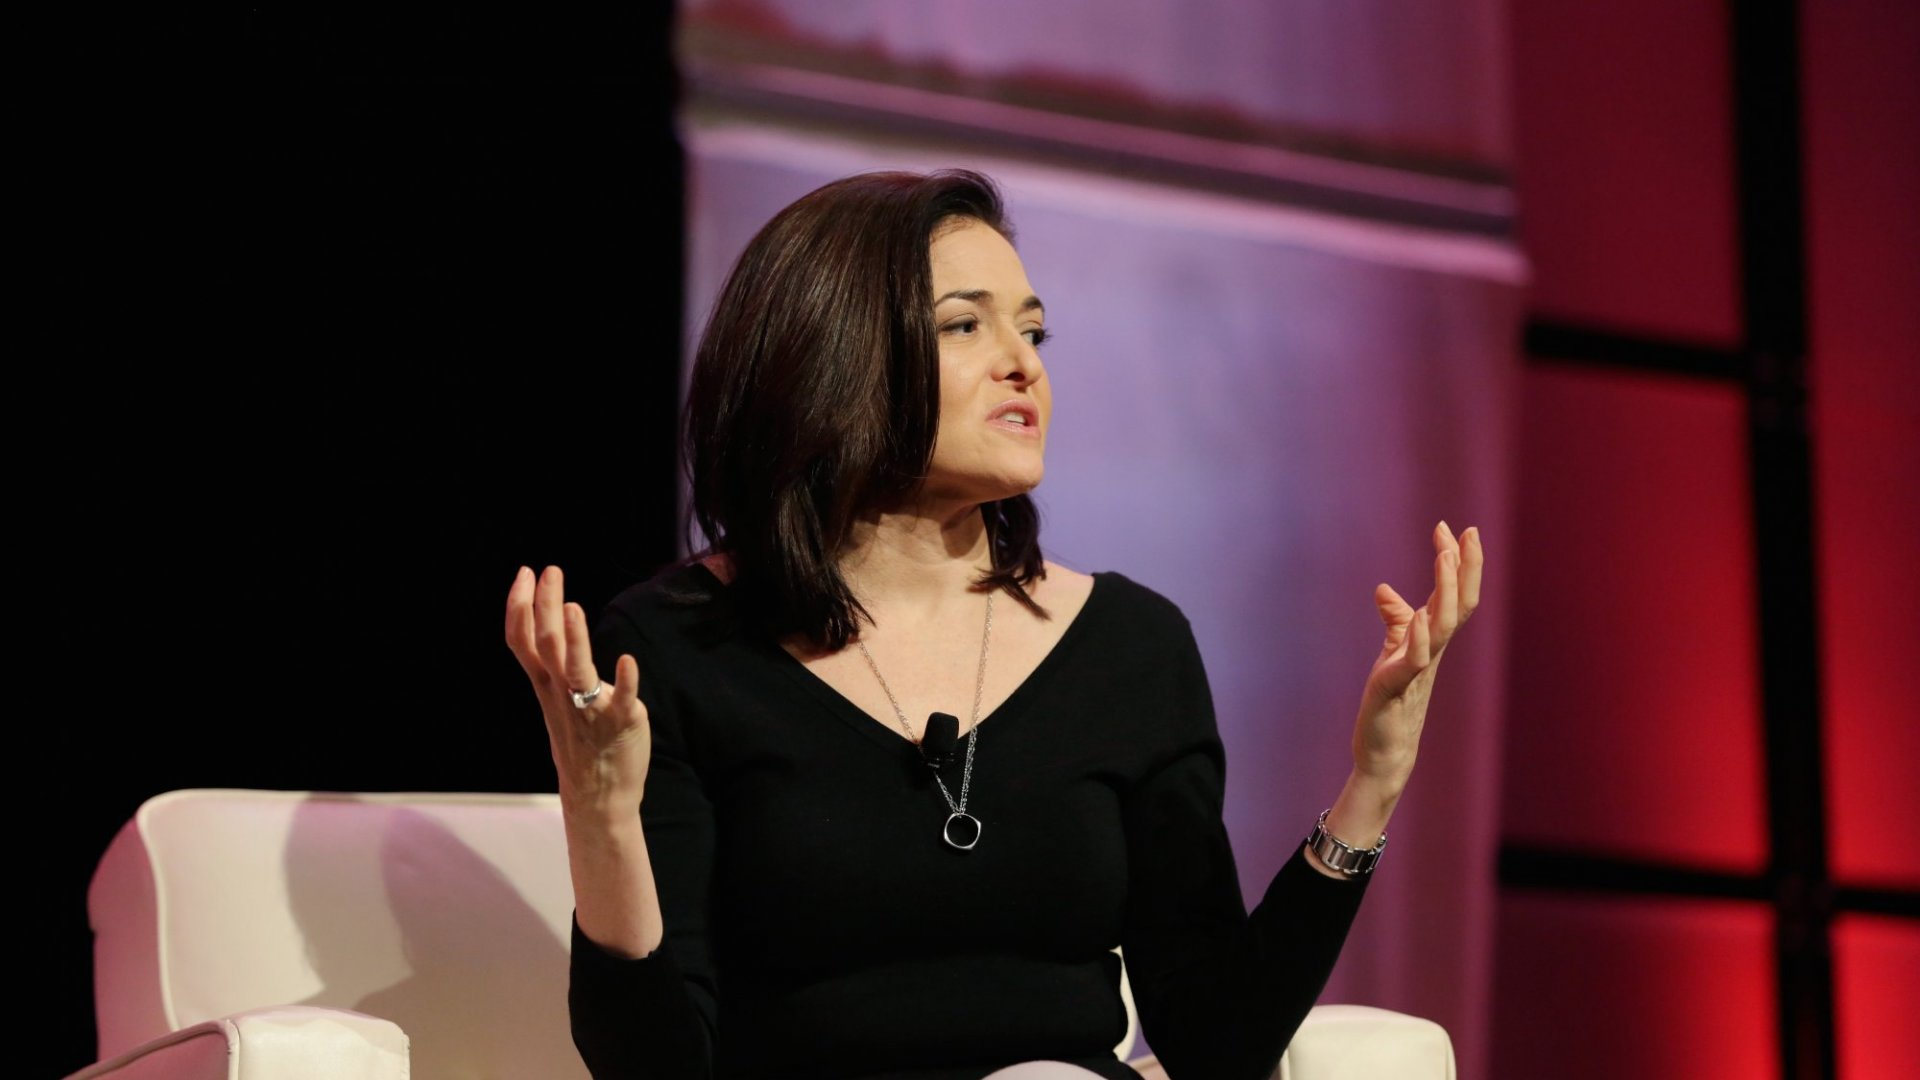 Looking for Ways to Scale Yourself? Sheryl Sandberg Says Do This 1 Thing